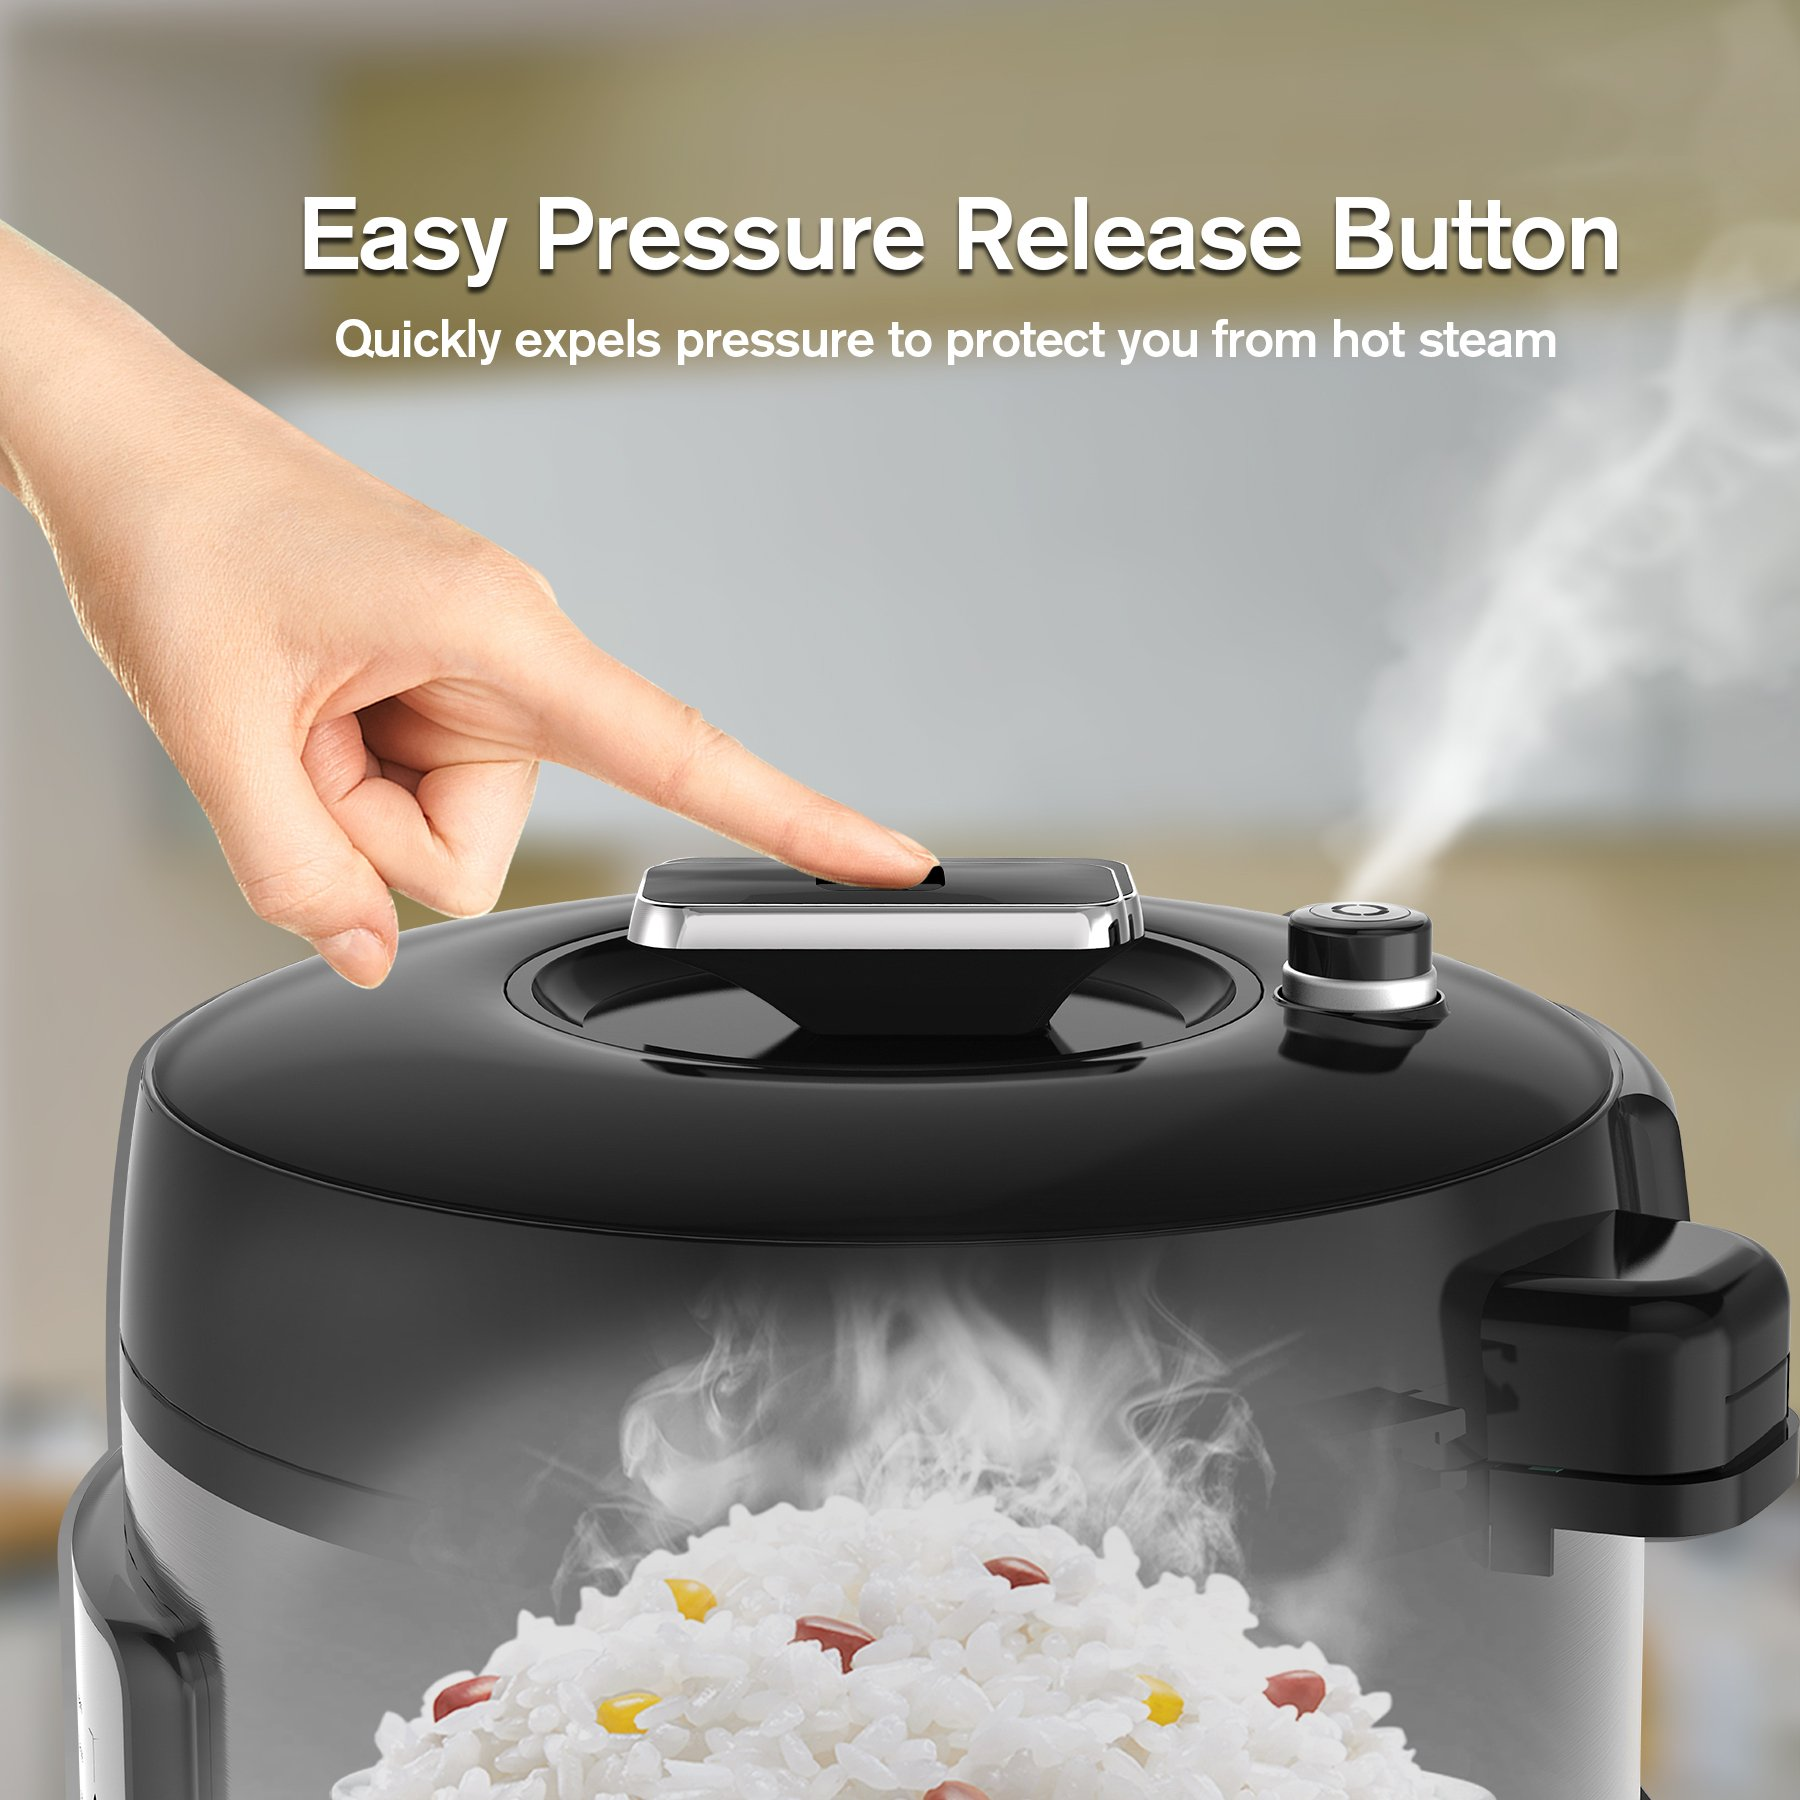 COSORI 6 Qt 7-in-1 Multi-Functional Programmable Pressure Cooker, Slow Cooker, Rice Cooker, Yogurt Maker, Sauté, Steamer & Warmer, Include Glass Lid, Sealing Ring and Recipe Book, 1000W by COSORI (Image #4)